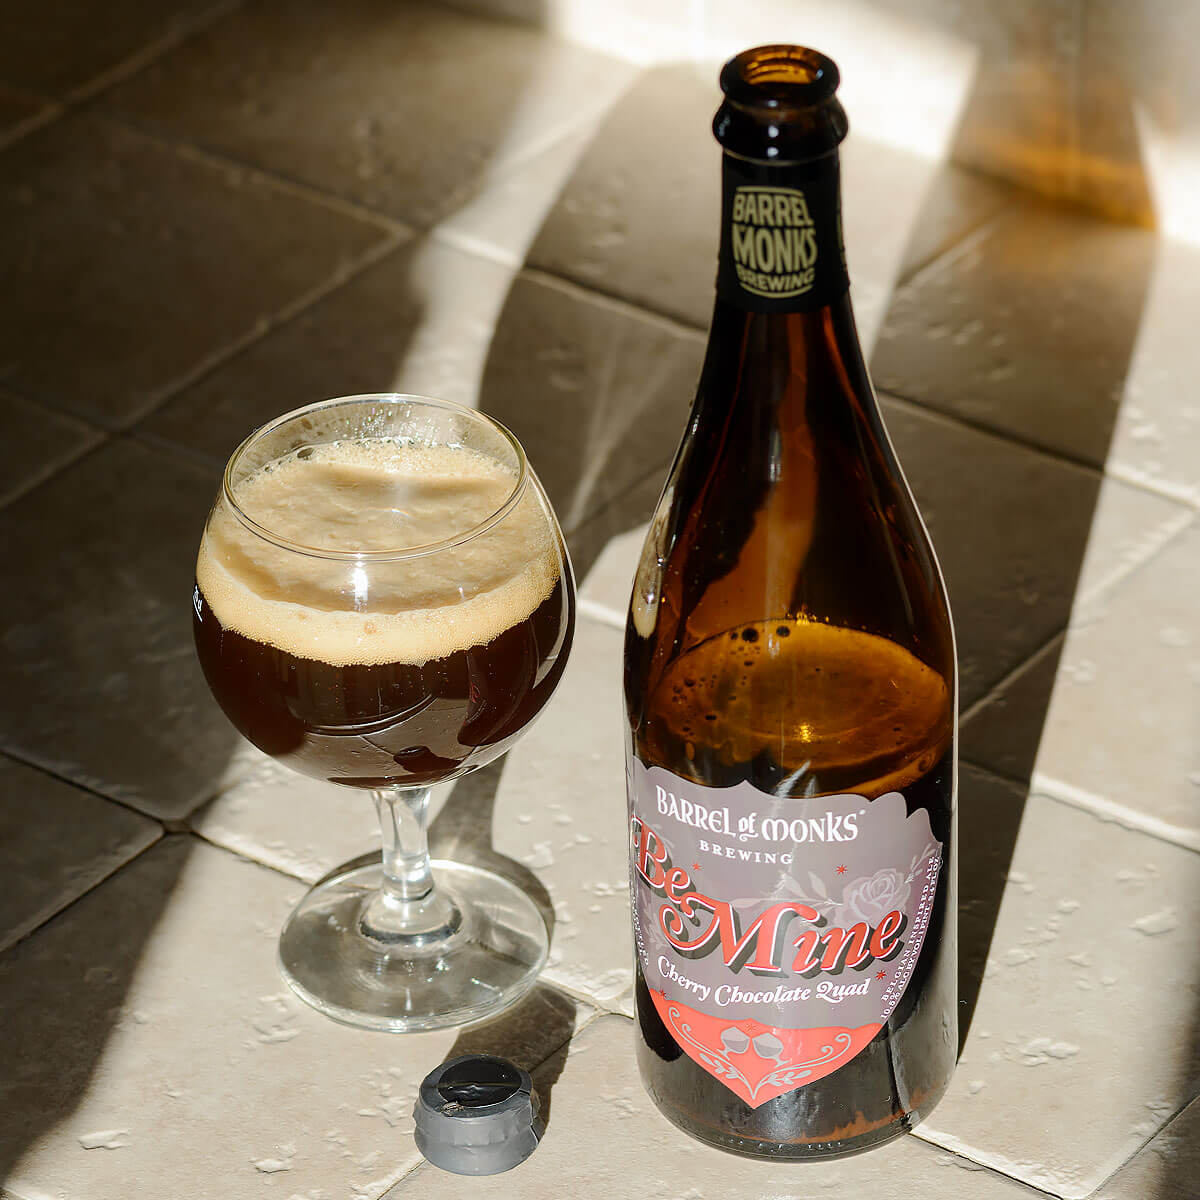 Be Mine, a Belgian-style Quadrupel by Barrel of Monks Brewing